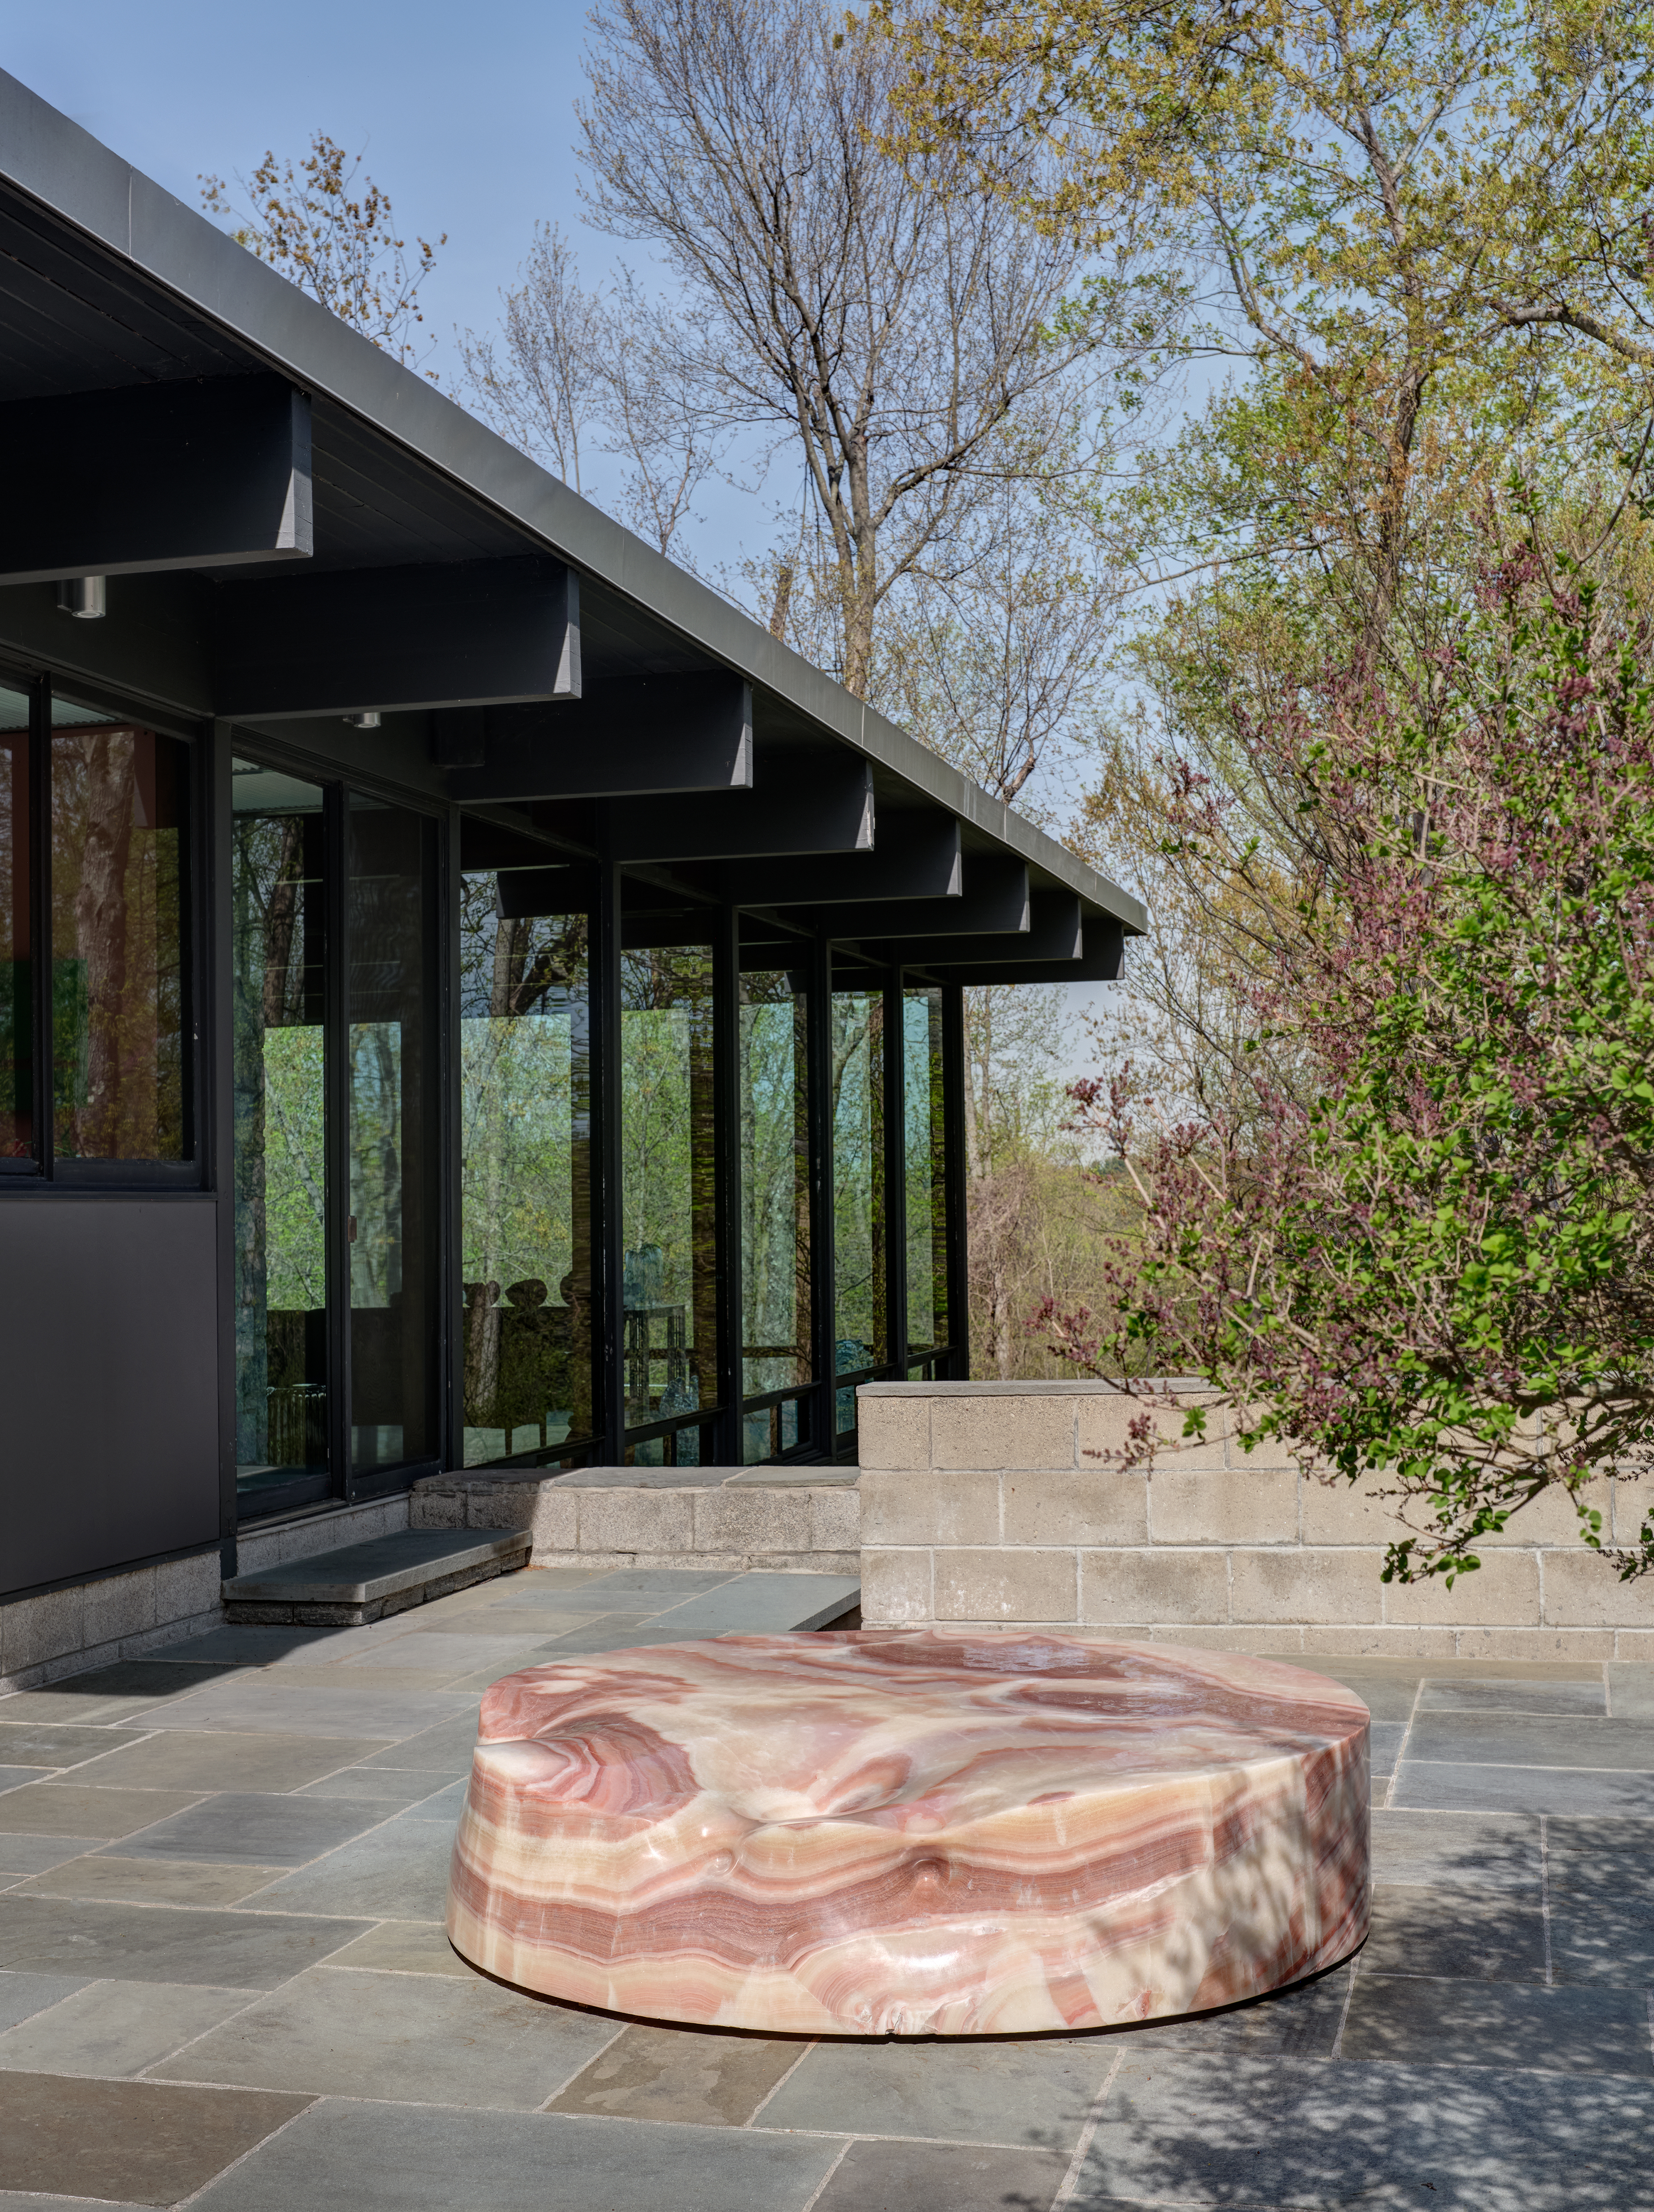 At The Luss House: Blum & Poe, Mendes Wood DM and Object & Thing. The Gerald Luss House, Ossining, New York. Photo by Michael Biondo. Work pictured: Alma Allen, Not Yet Titled (2019).